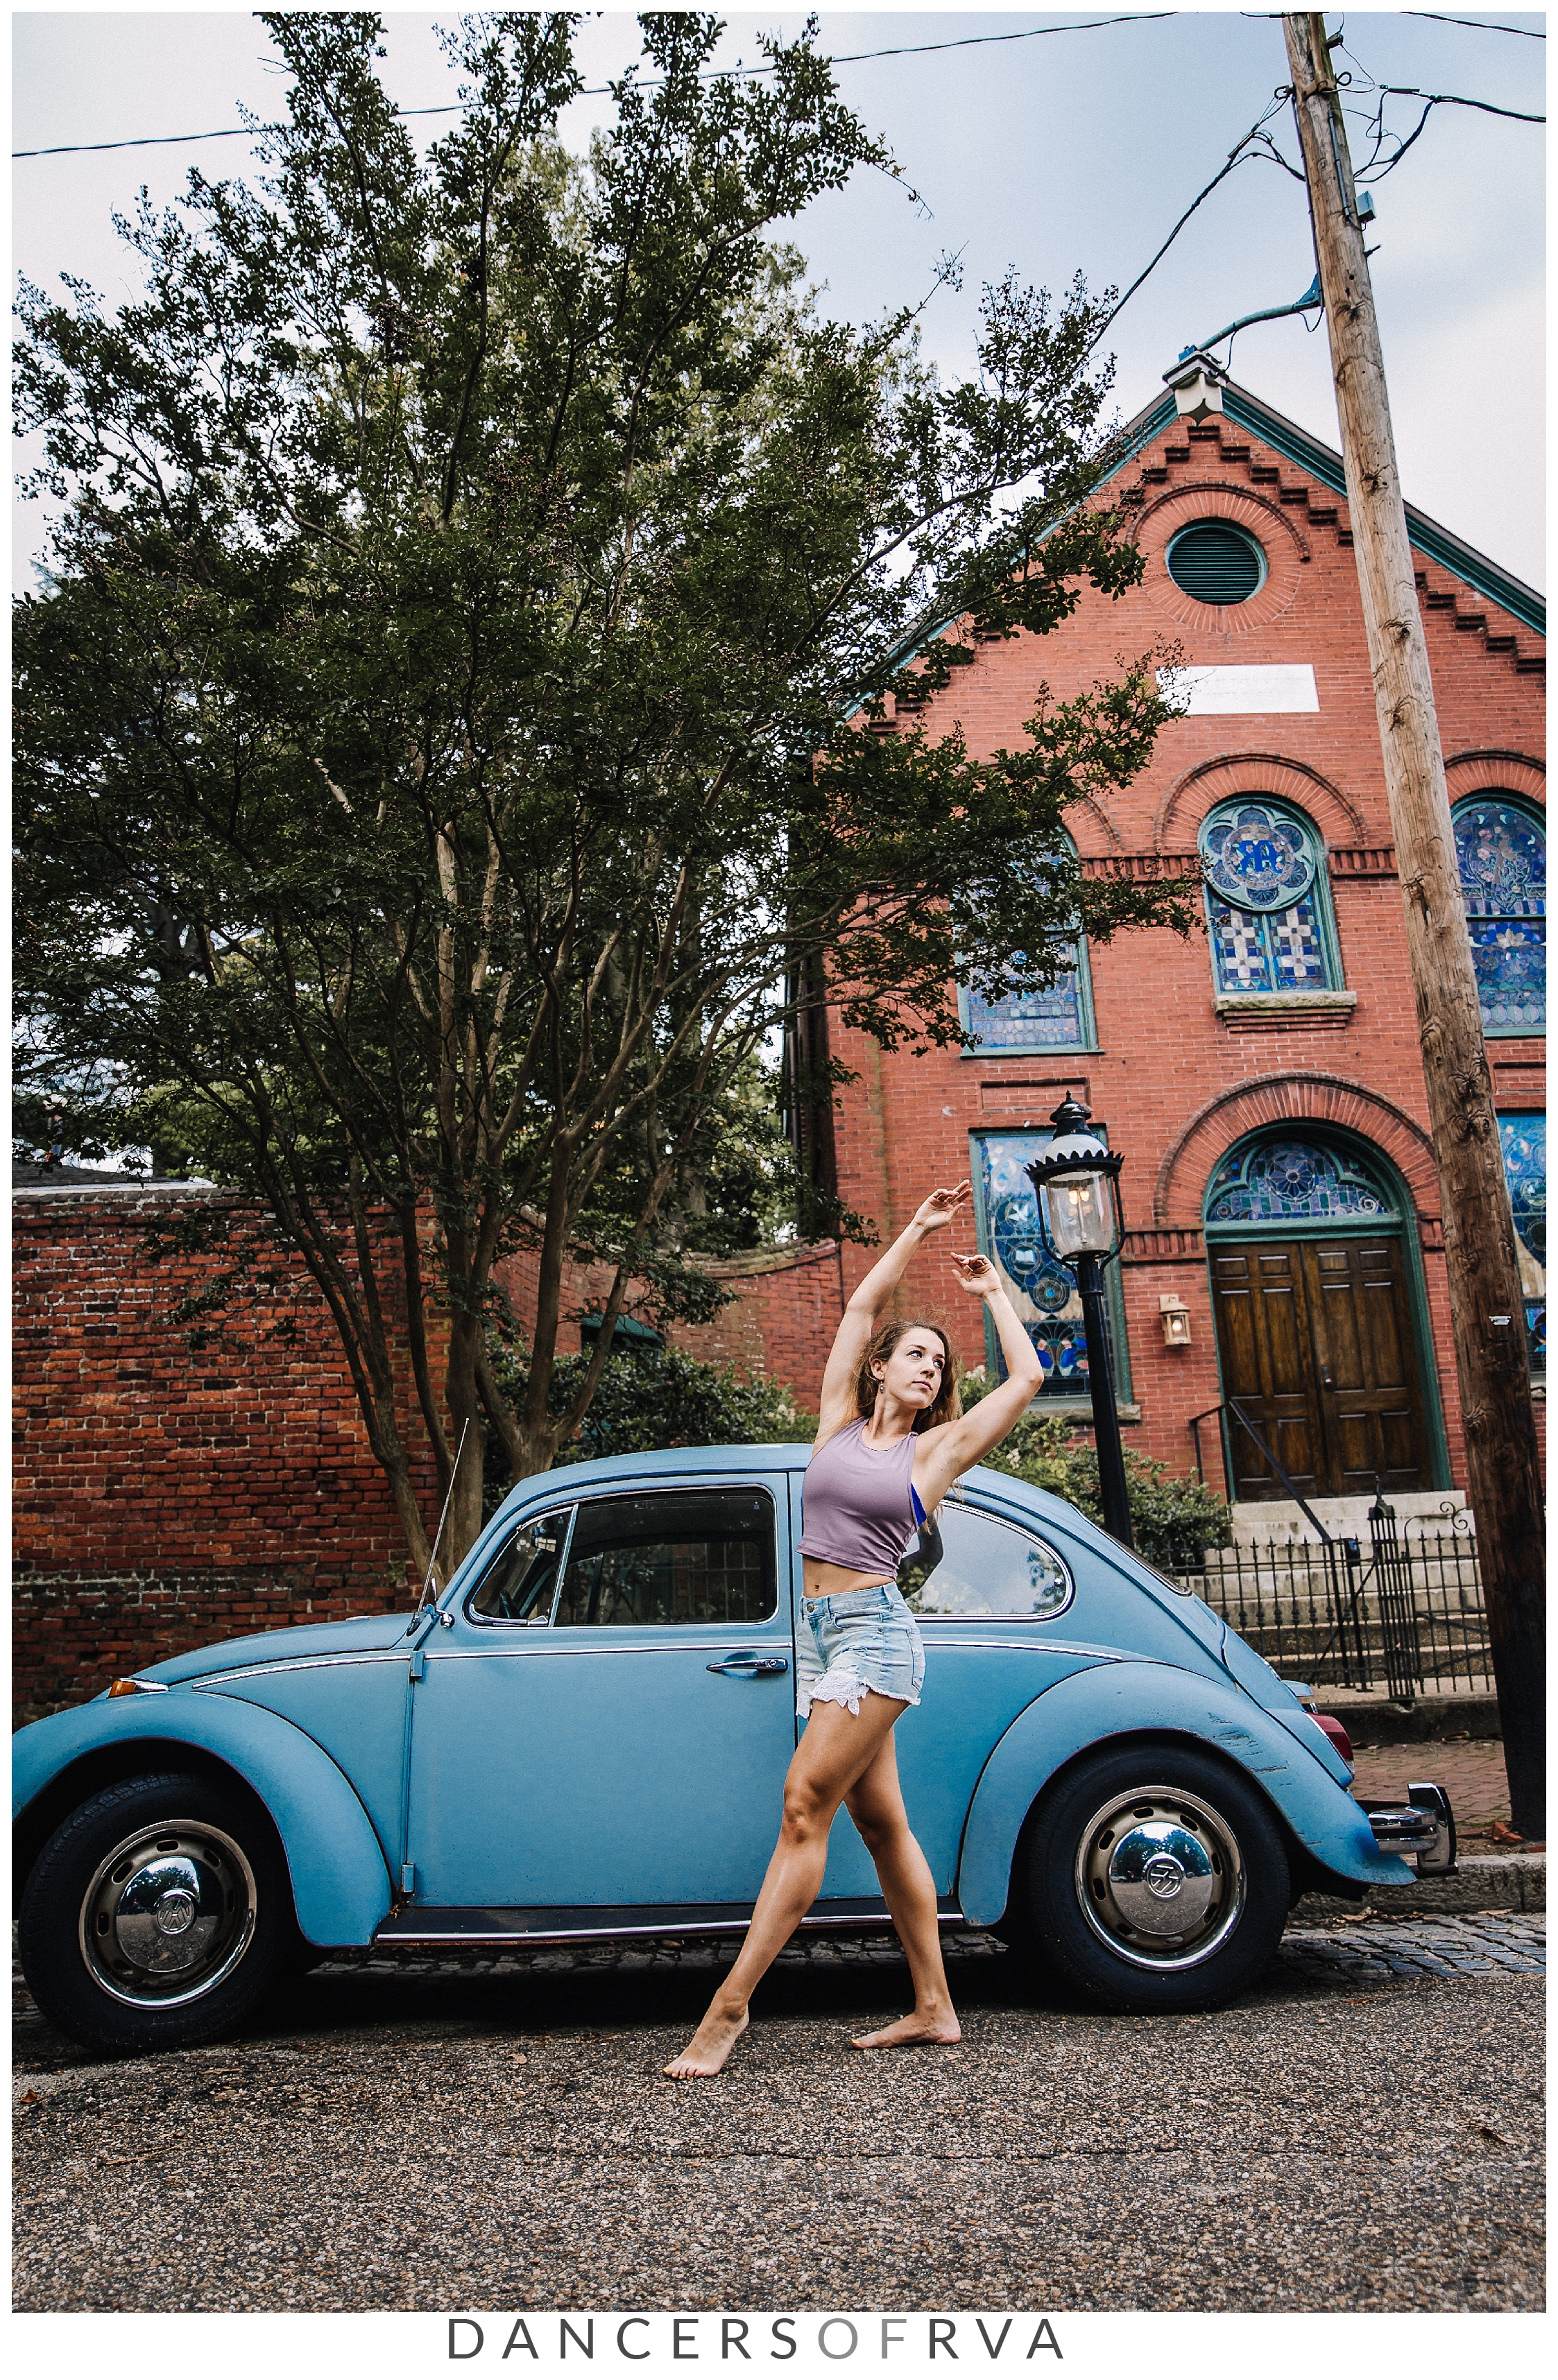 Dancers of RVA _ Karar Dance Company in front of a vintage blue VW beetle